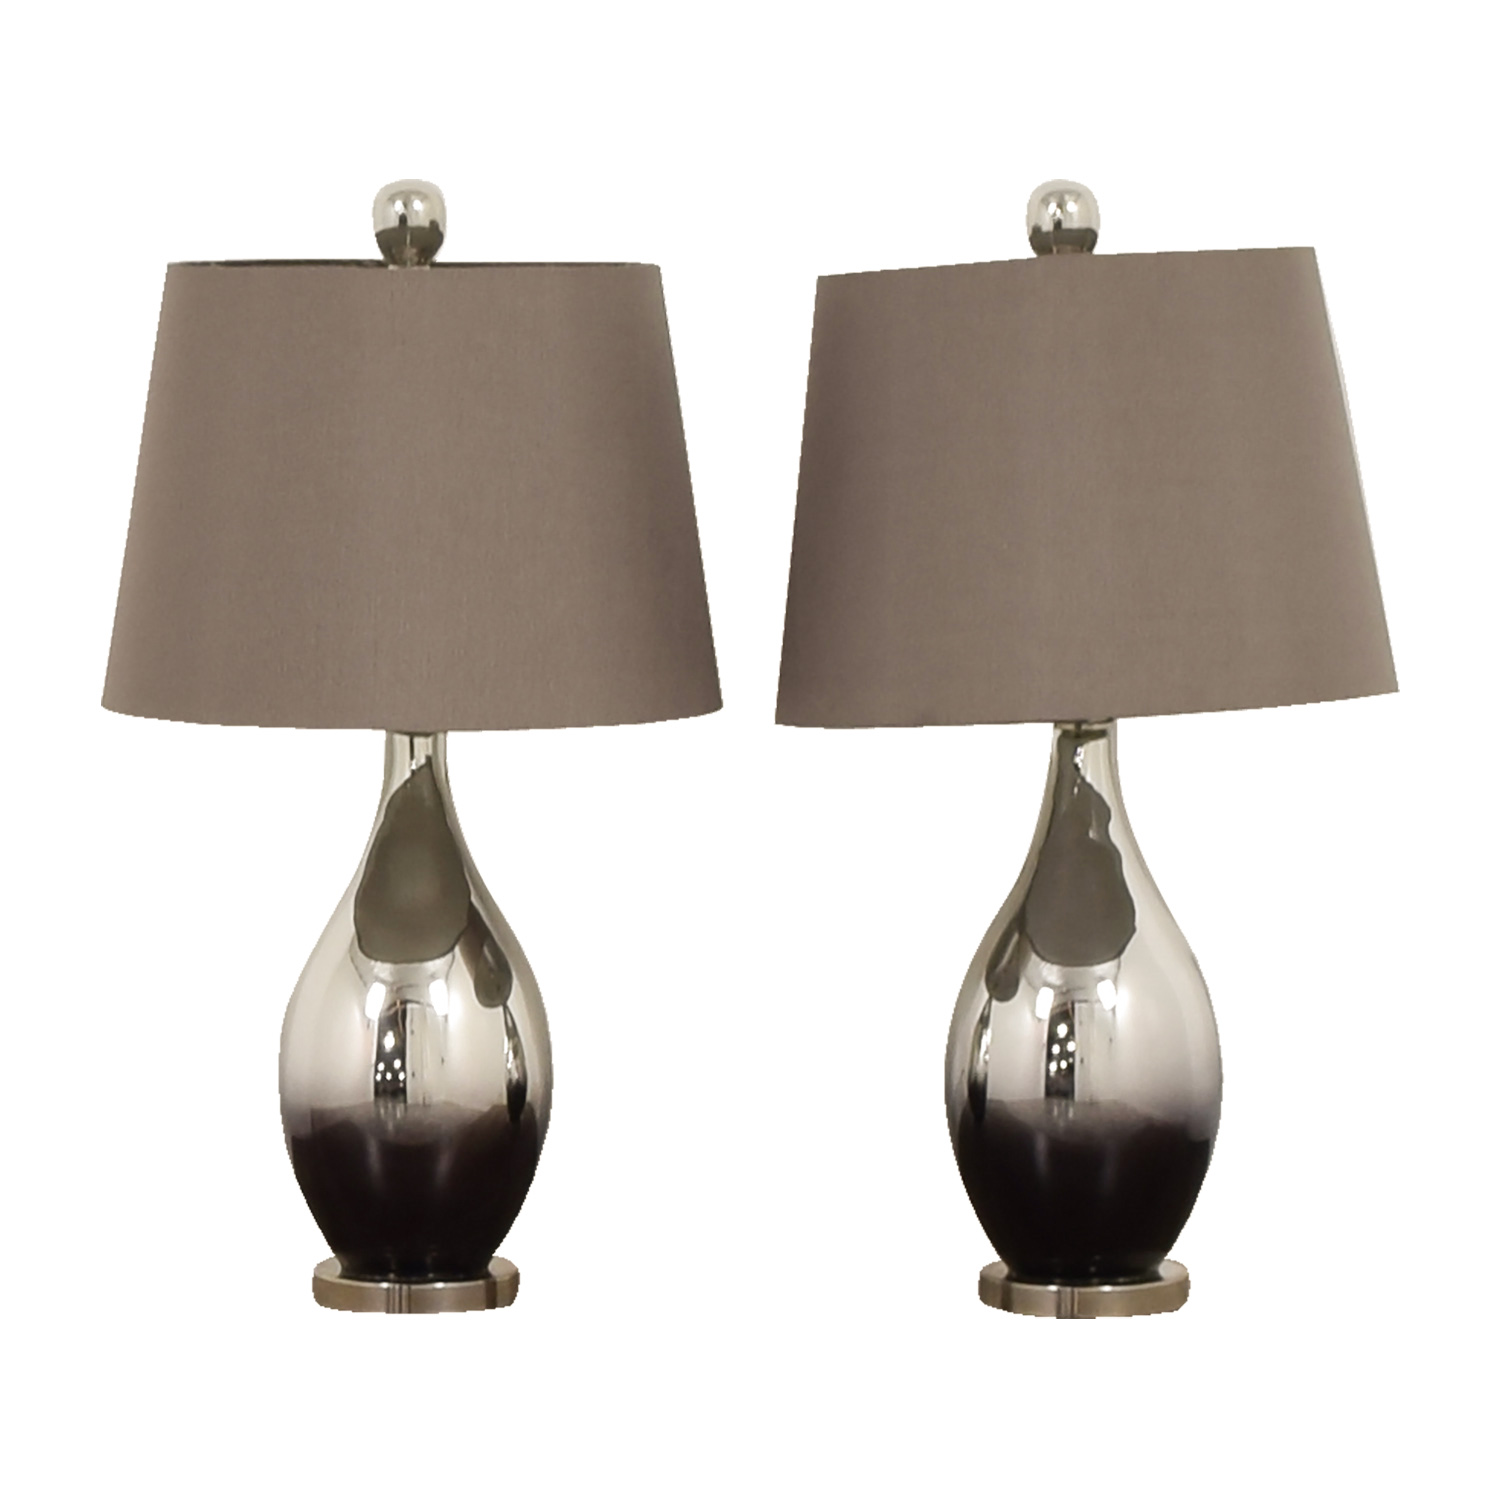 mirrored lighting. NY Lighting Mirrored Lamps Nyc L